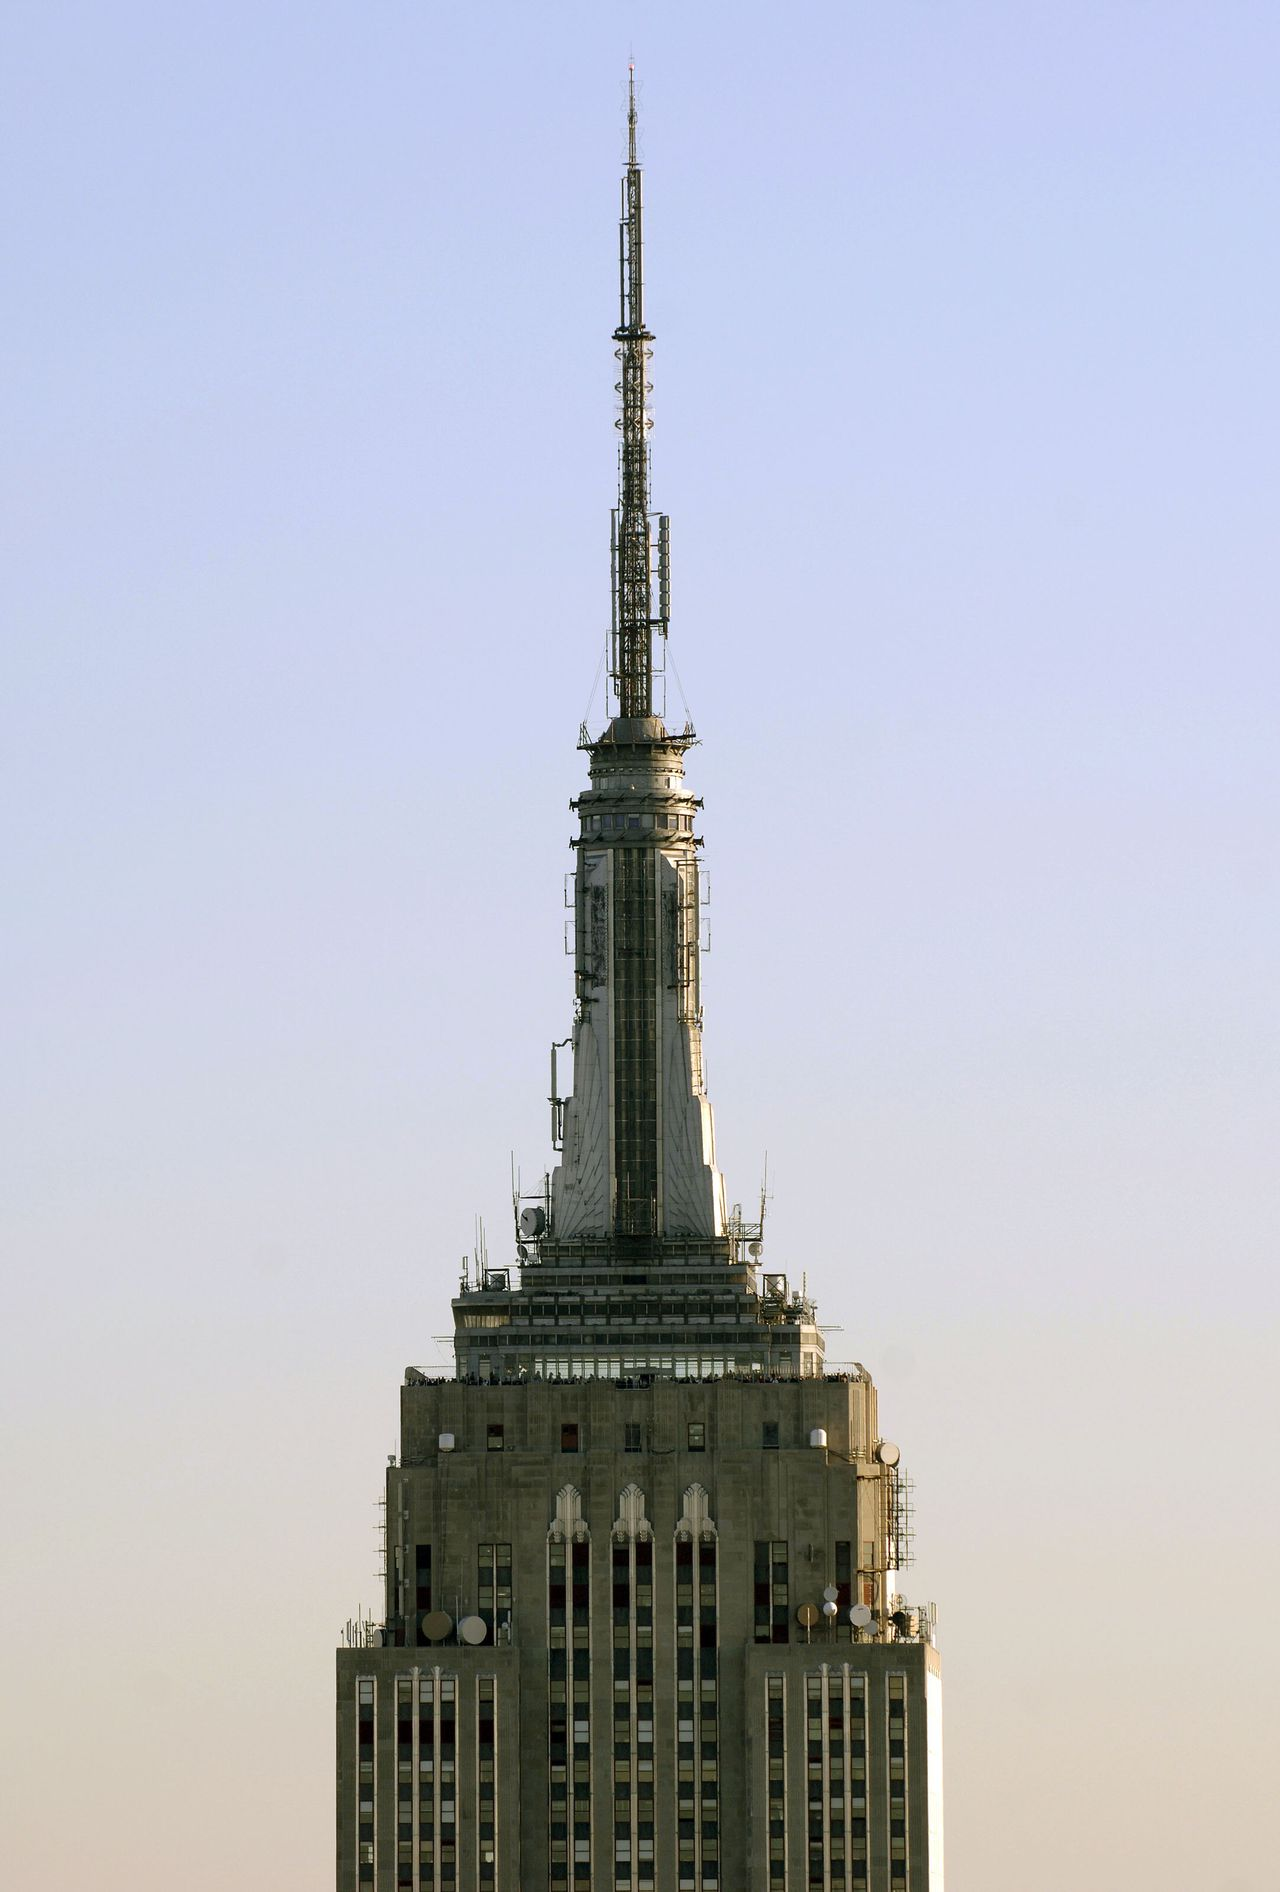 The dirigible mooring mast (unused) and radio antenna atop the 102-floor Empire State Building at sunset, 28 April, 2006, in New York. 01 May, 2006 marks the 75th anniversary of the opening of the 1,454 foot (443.2 meter to the top of the lightning rod) building. Built of steel and aluminum and faced with granite and Indiana limestone, it was for 40 years the world's tallest edifice until surpassed in 1972 by the World Trade Center. It again became the city's tallest after airliners flown by terrorist hijackers destroyed the 110-story twin towers on September 11, 2001. It now ranks ninth in the world, and second in the United States behind Chicago's Sears Tower. AFP PHOTO/Stan HONDA